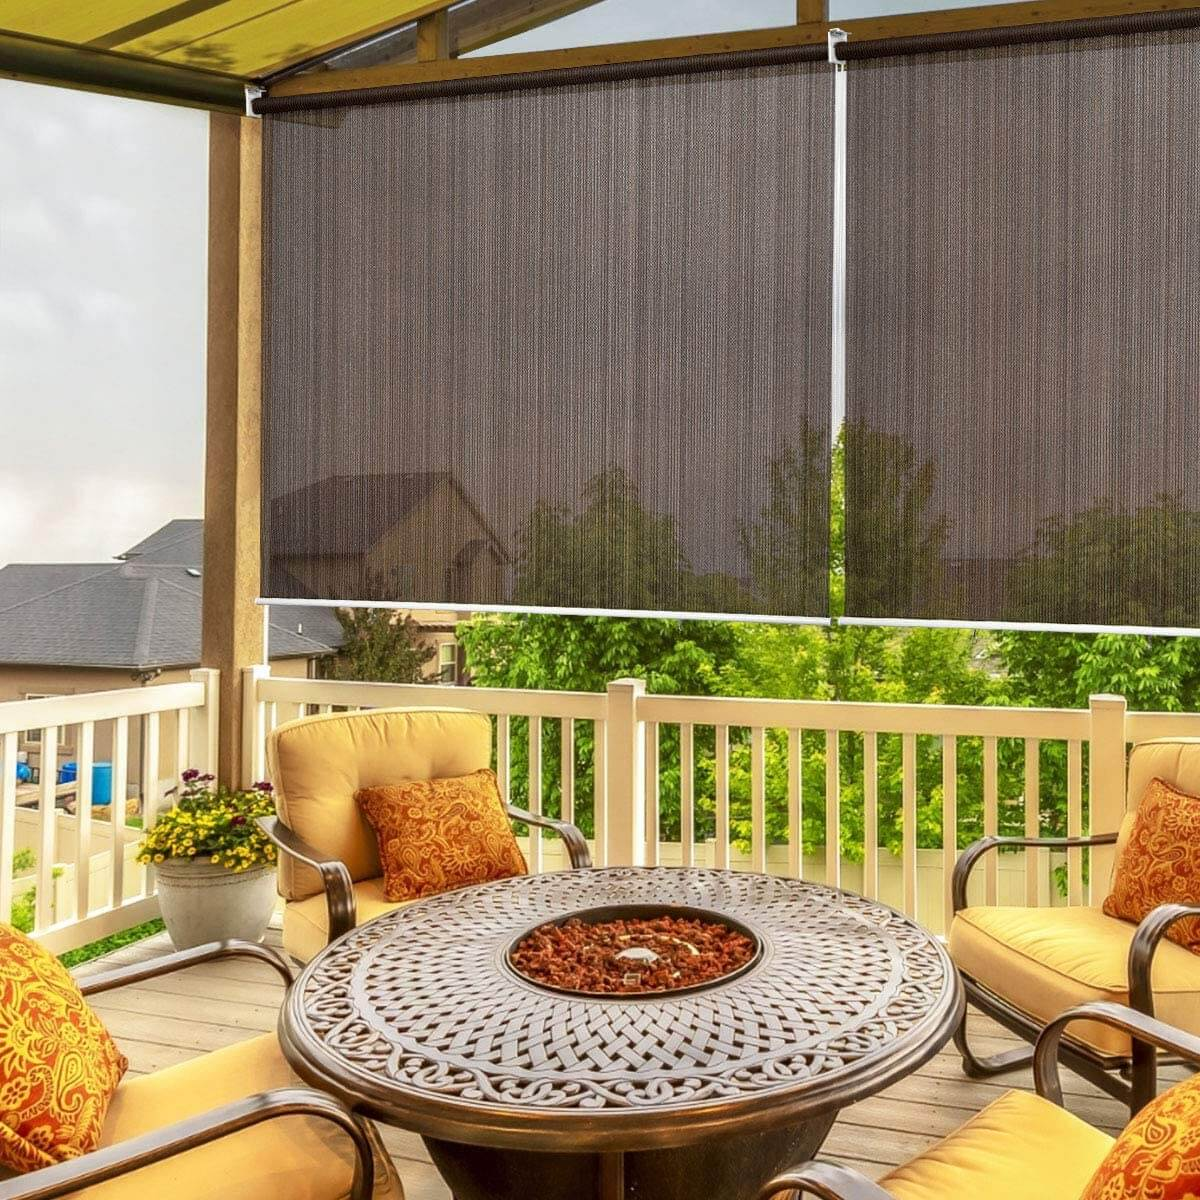 ROLL UP PATIO SHADES TO FILTER THE SUN